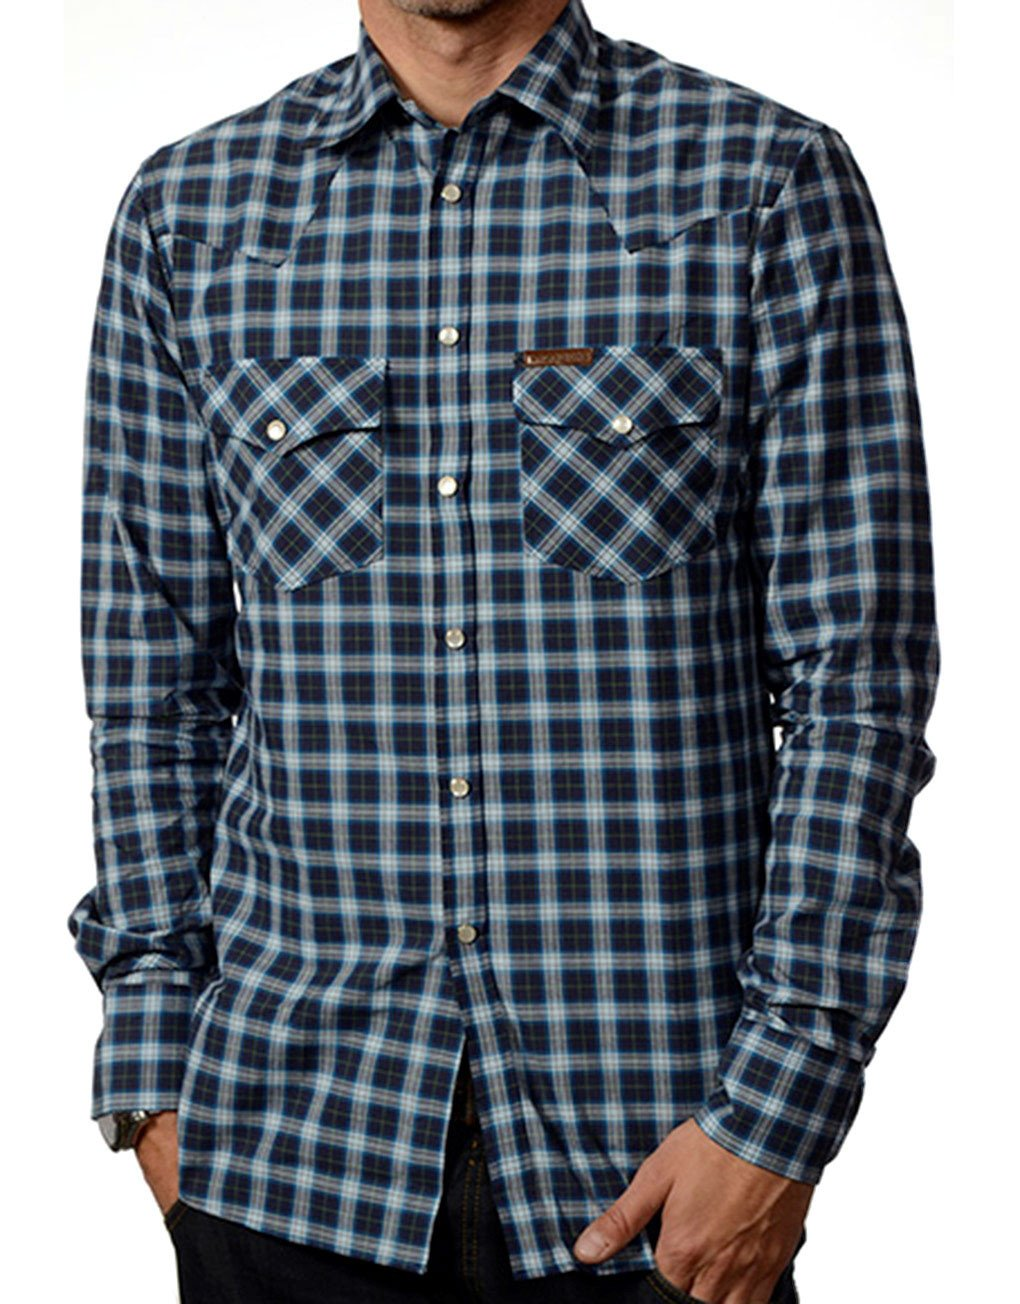 Wicked One Square Shirt hos Stillo